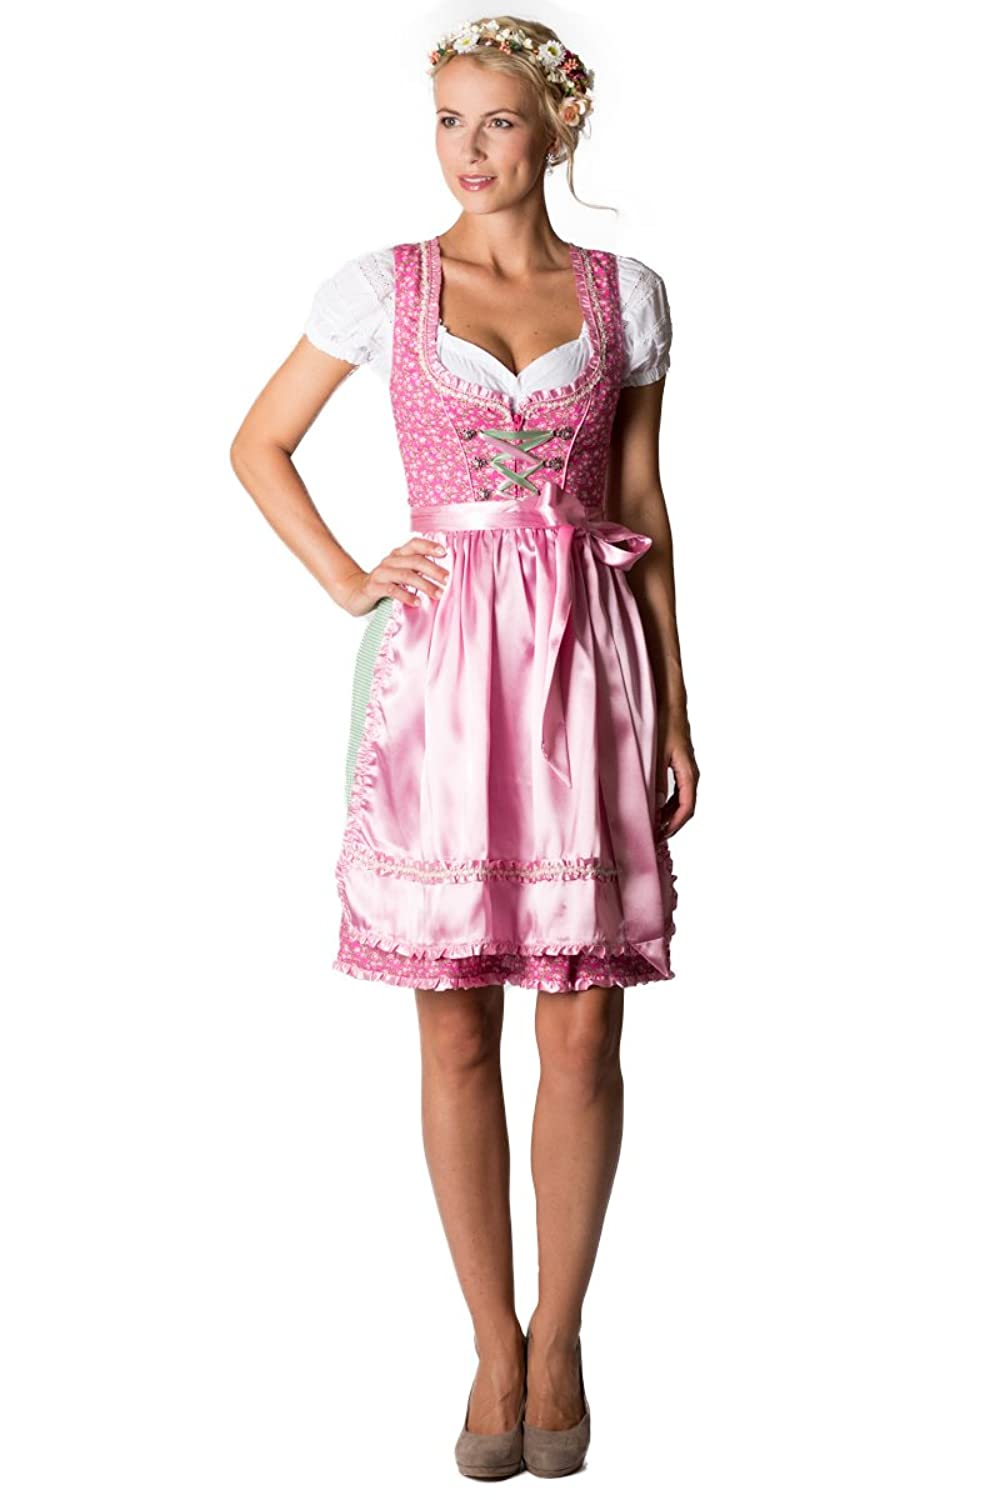 alpenfee damen midi dirndl yvonne pink rosa gr n d010221 kaufen. Black Bedroom Furniture Sets. Home Design Ideas